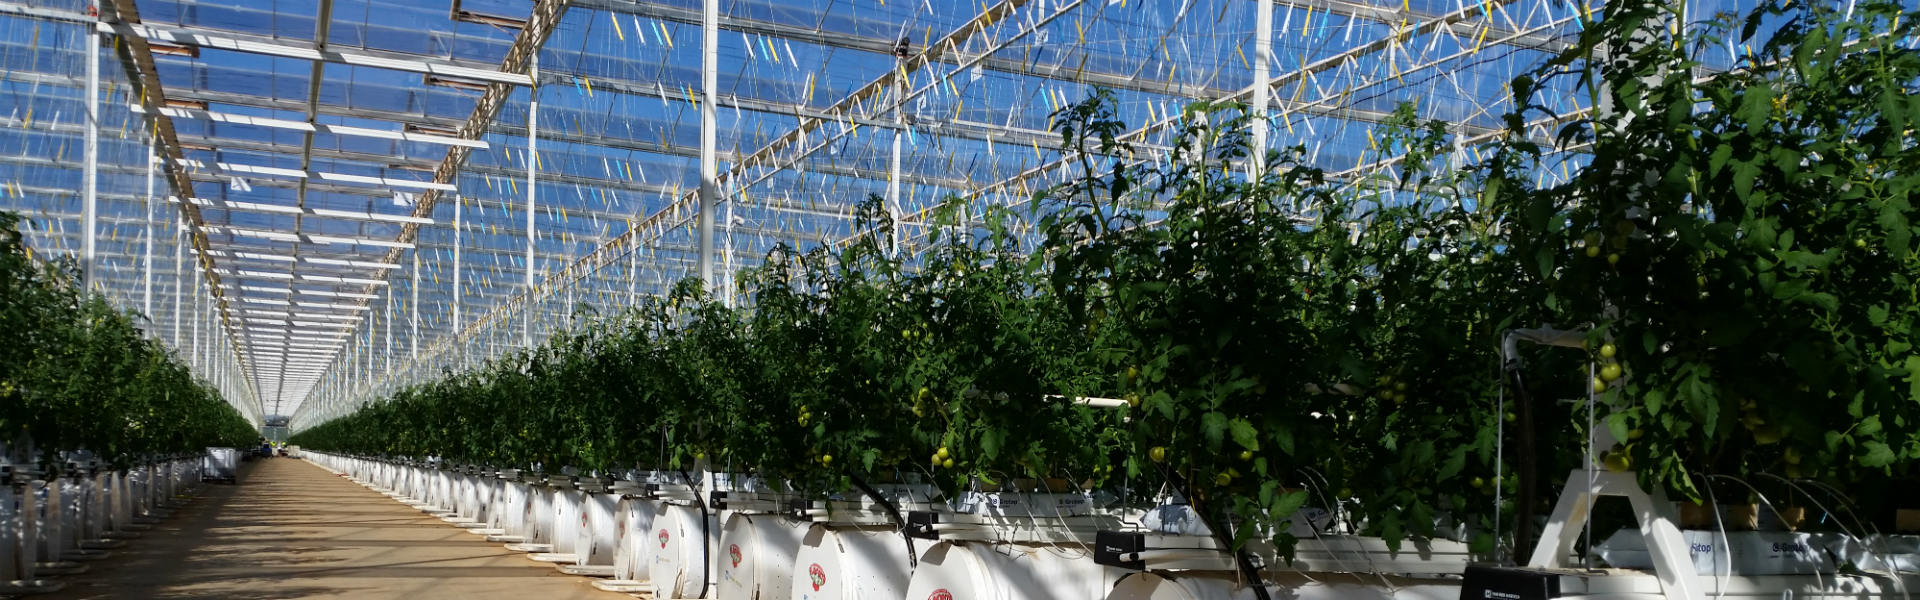 Alcomij's semi-closed greenhouse solutions